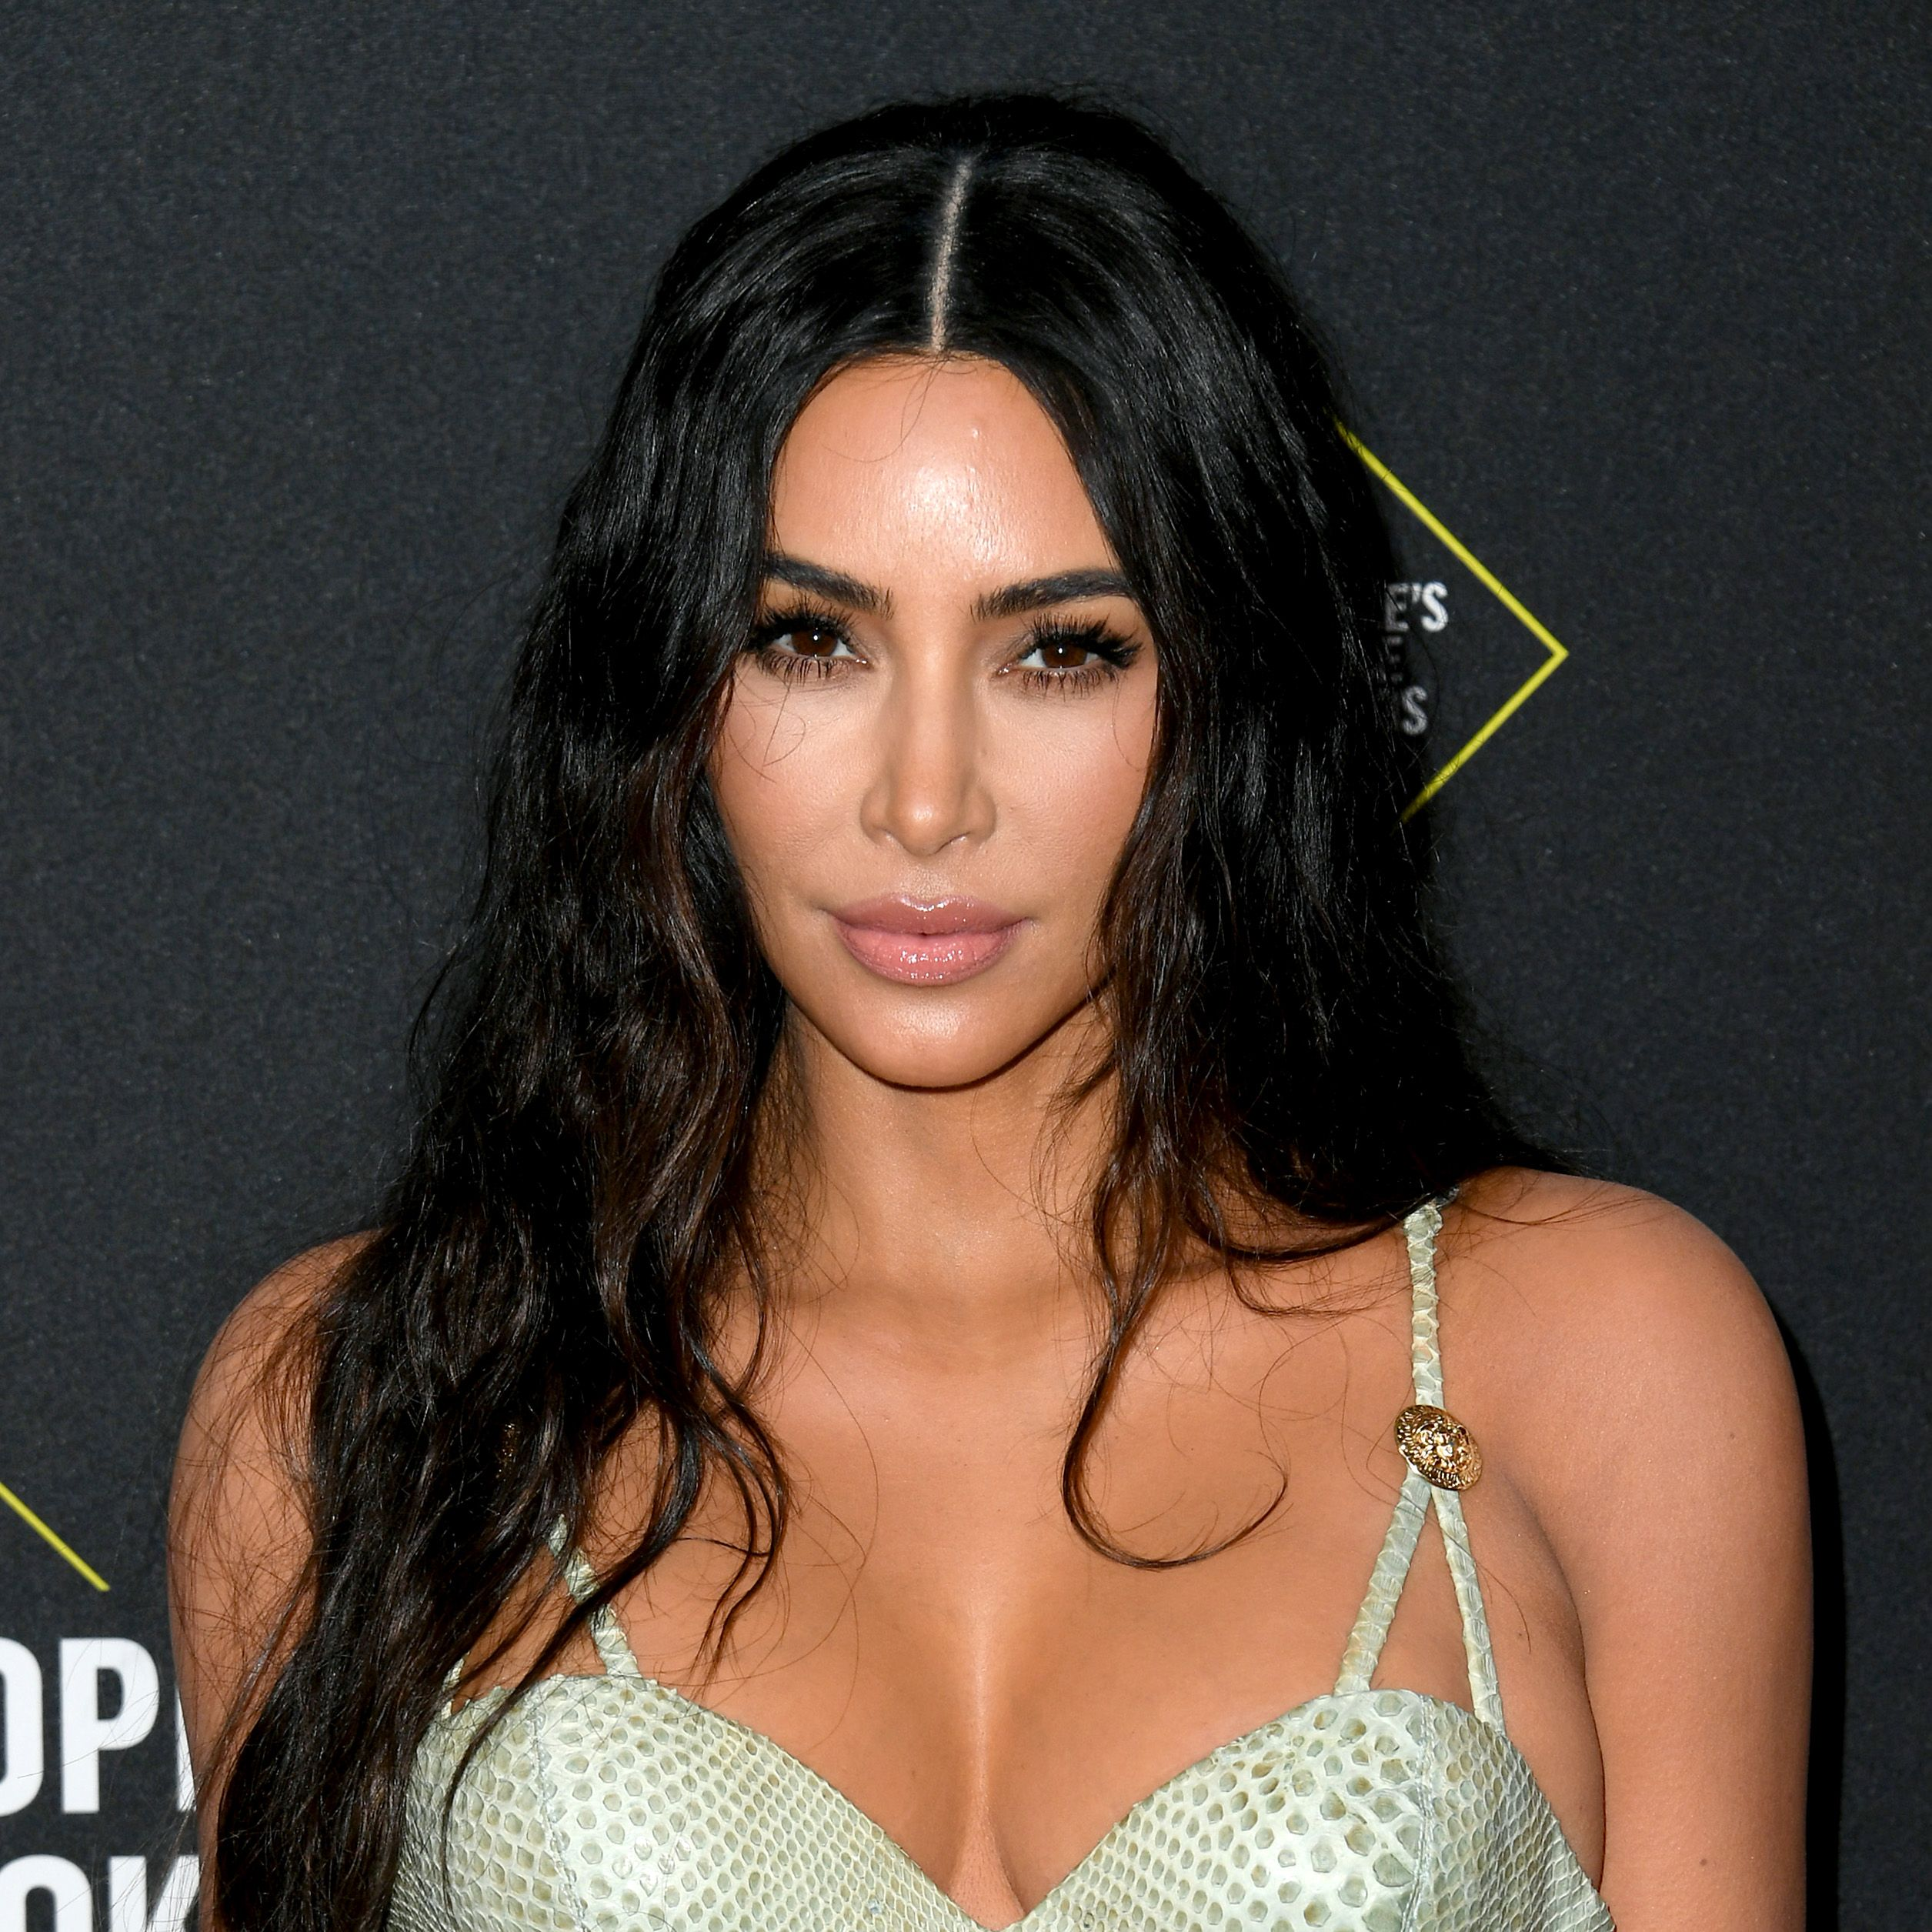 what diet does kim kardashian follow